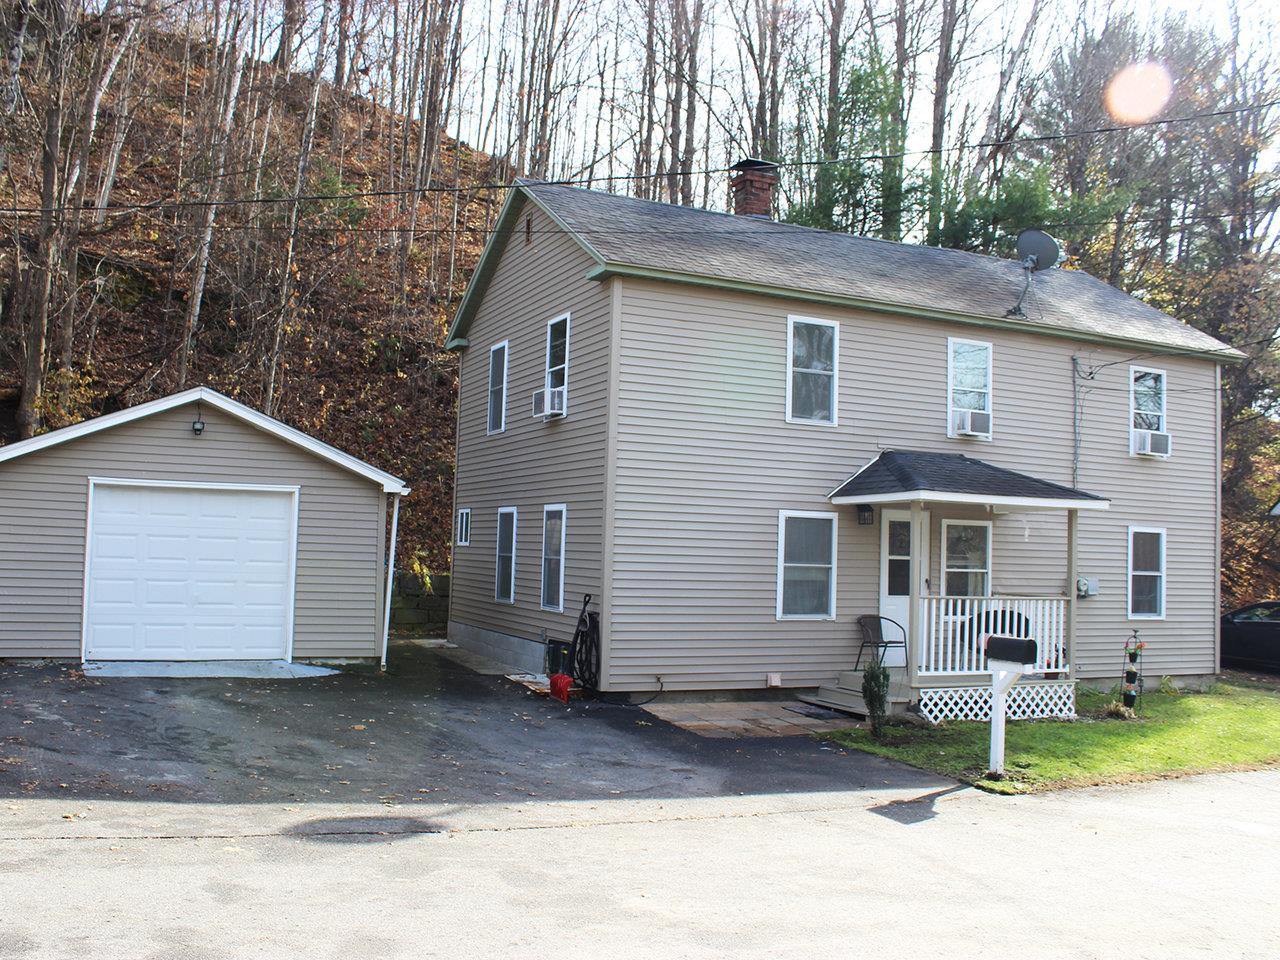 Sold property in Barre